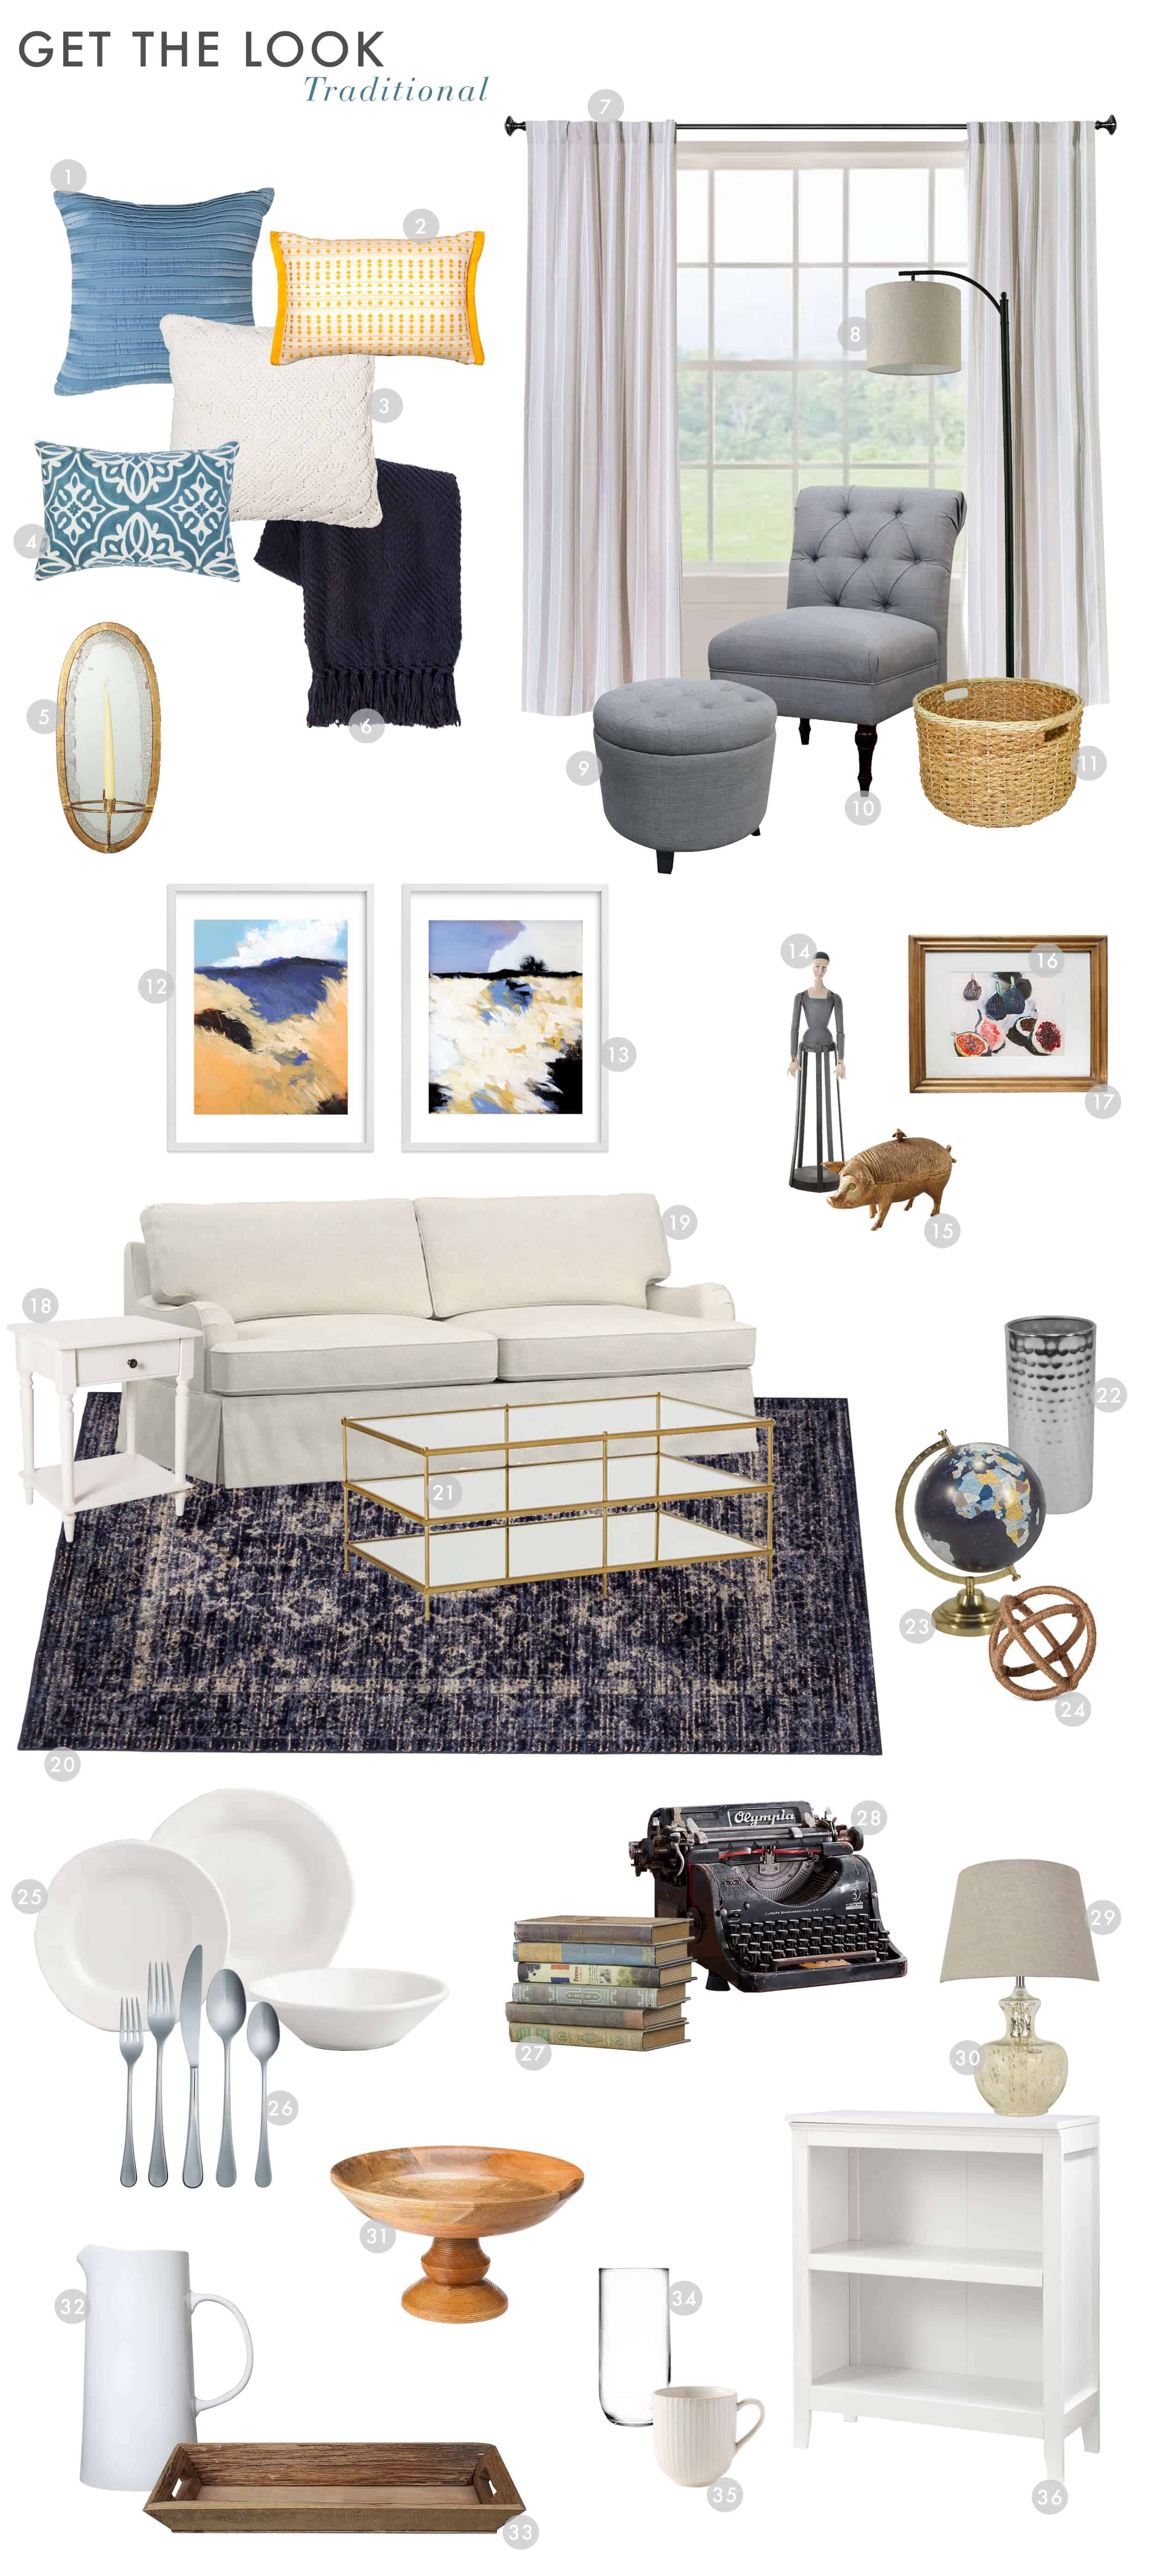 Emily Henderson_Find Your Style_Style Quiz_Vignettes_Traditional_Get the Look_2